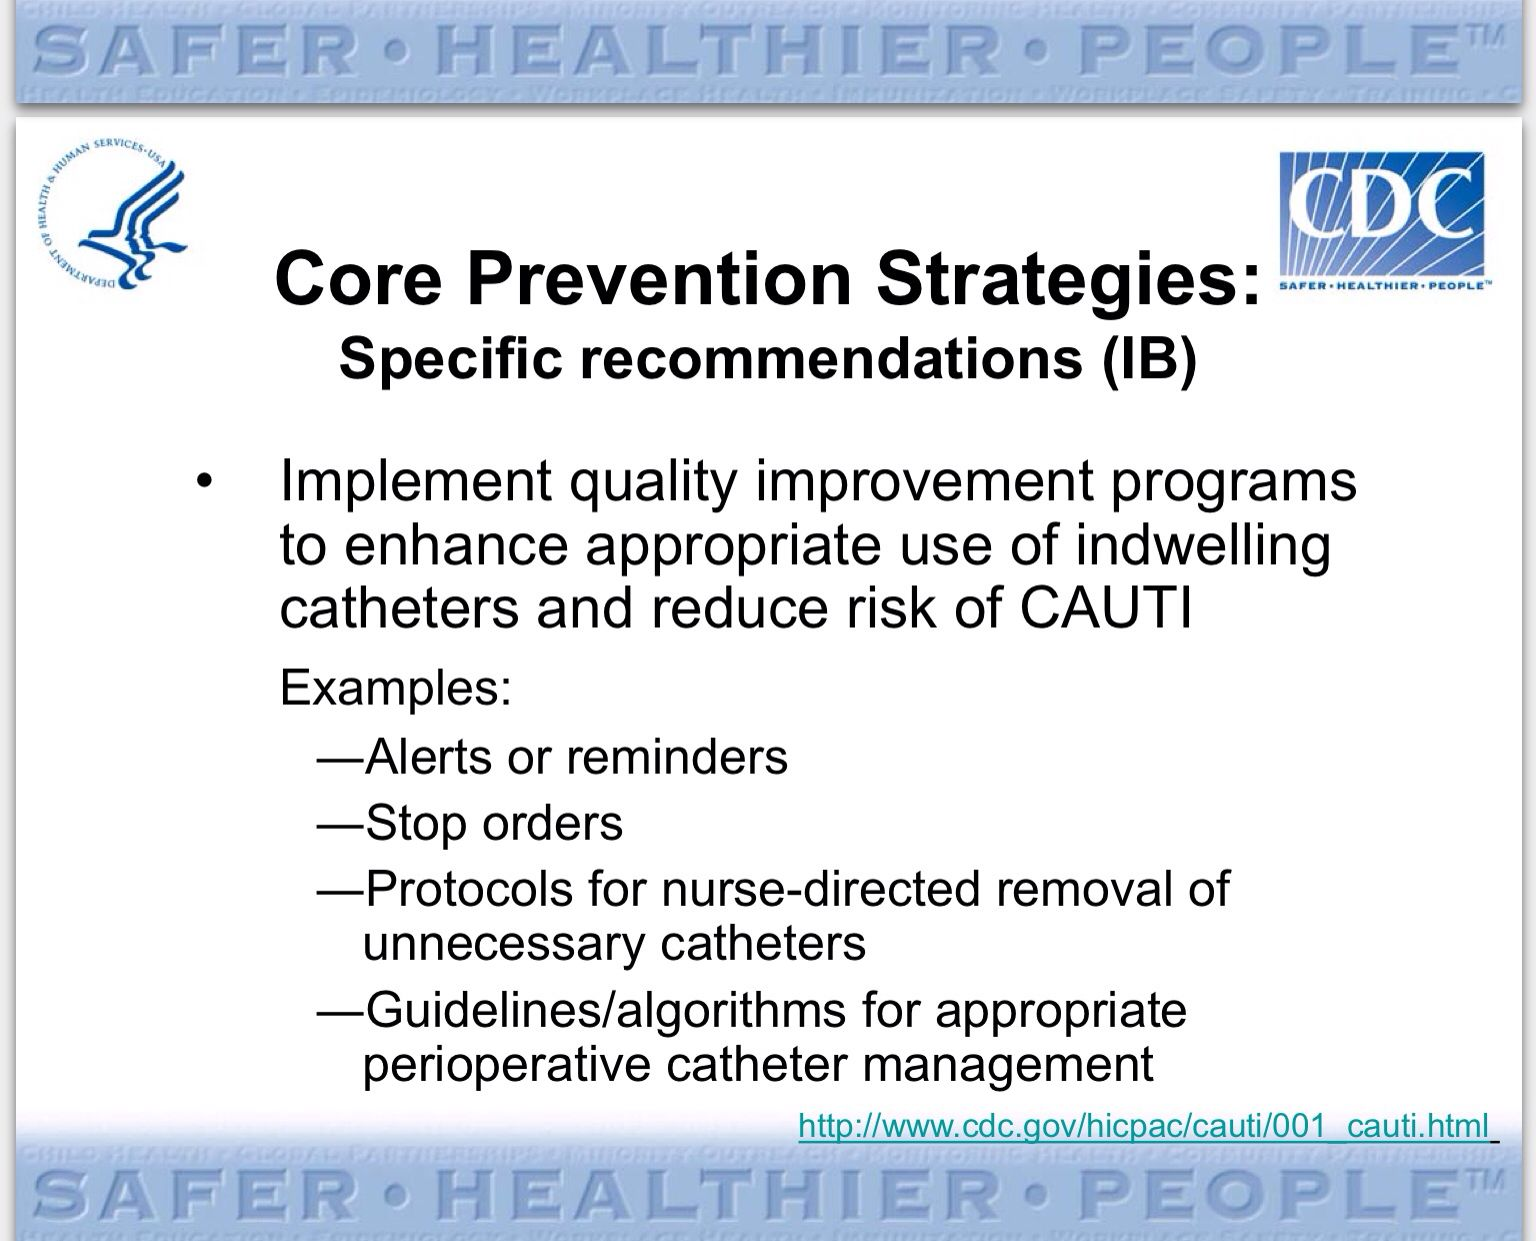 CDC for decreasing CAUTI in acute and long